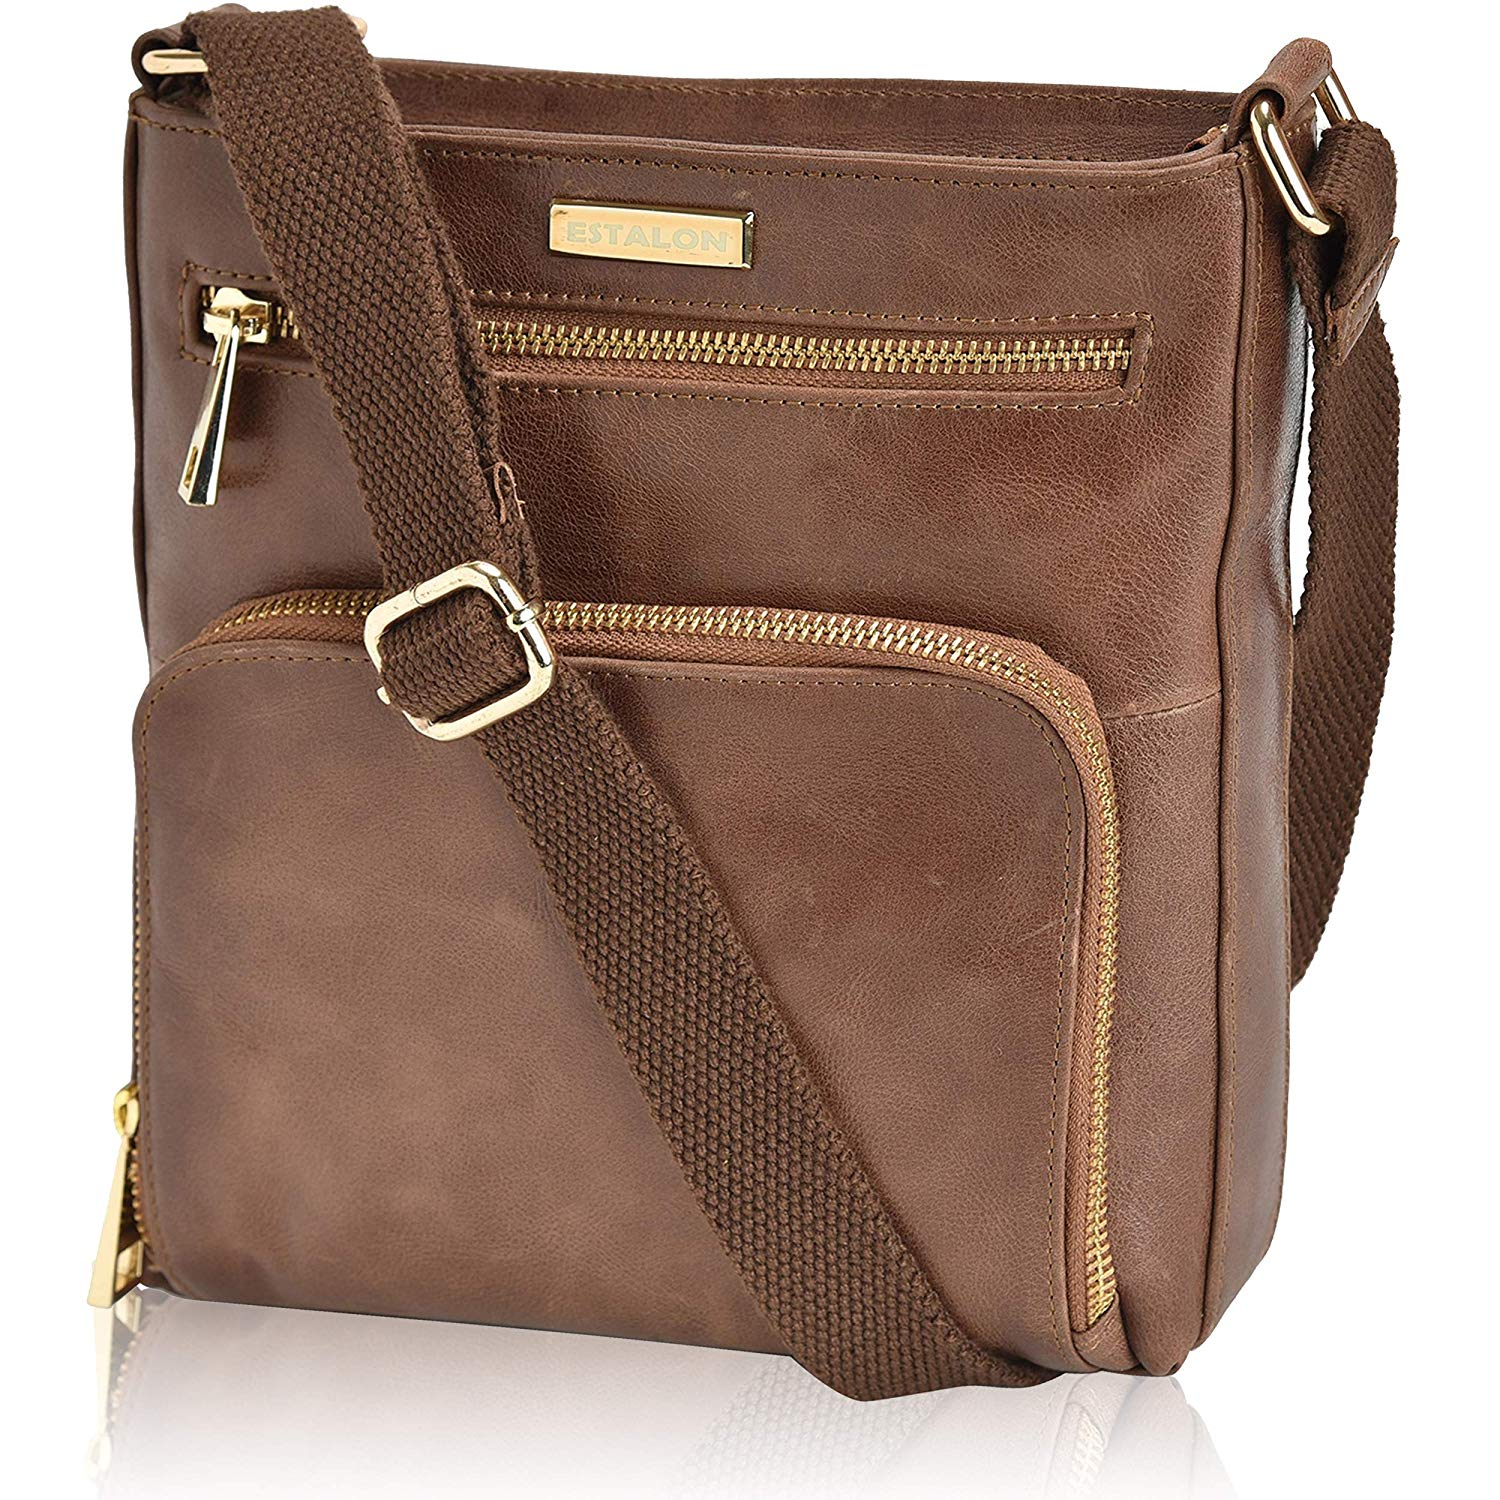 Get Quotations Leather Crossbody Purses And Handbags For Women Premium Crossover Bag Over The Shoulder Womens